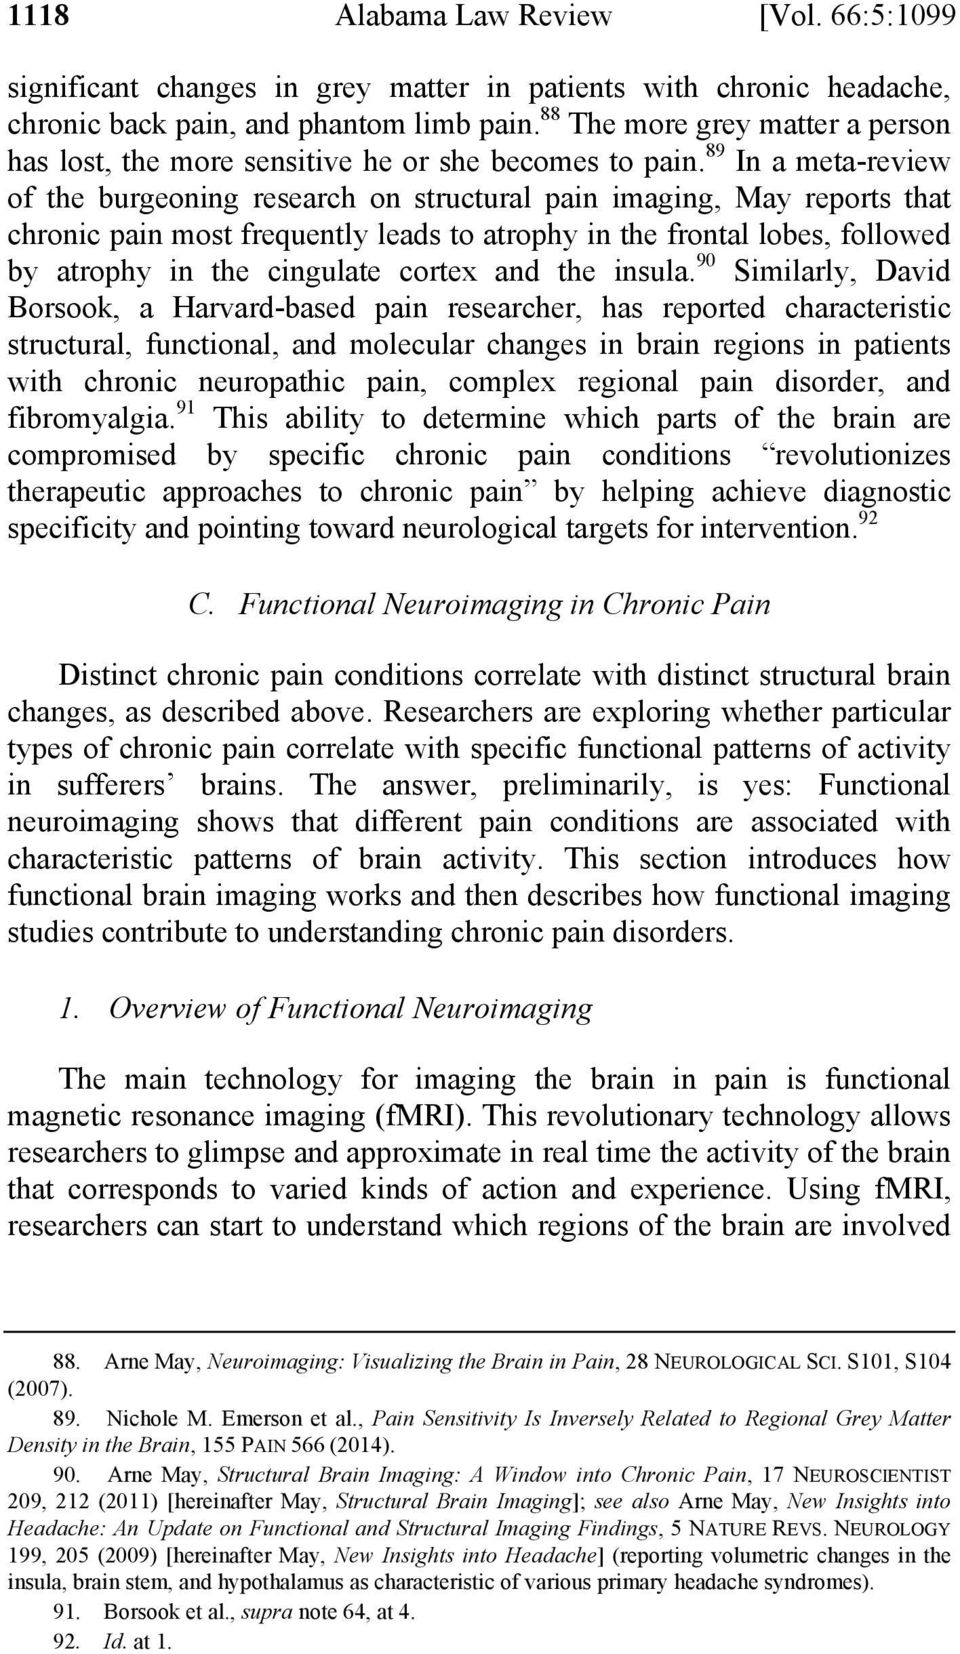 89 In a meta-review of the burgeoning research on structural pain imaging, May reports that chronic pain most frequently leads to atrophy in the frontal lobes, followed by atrophy in the cingulate